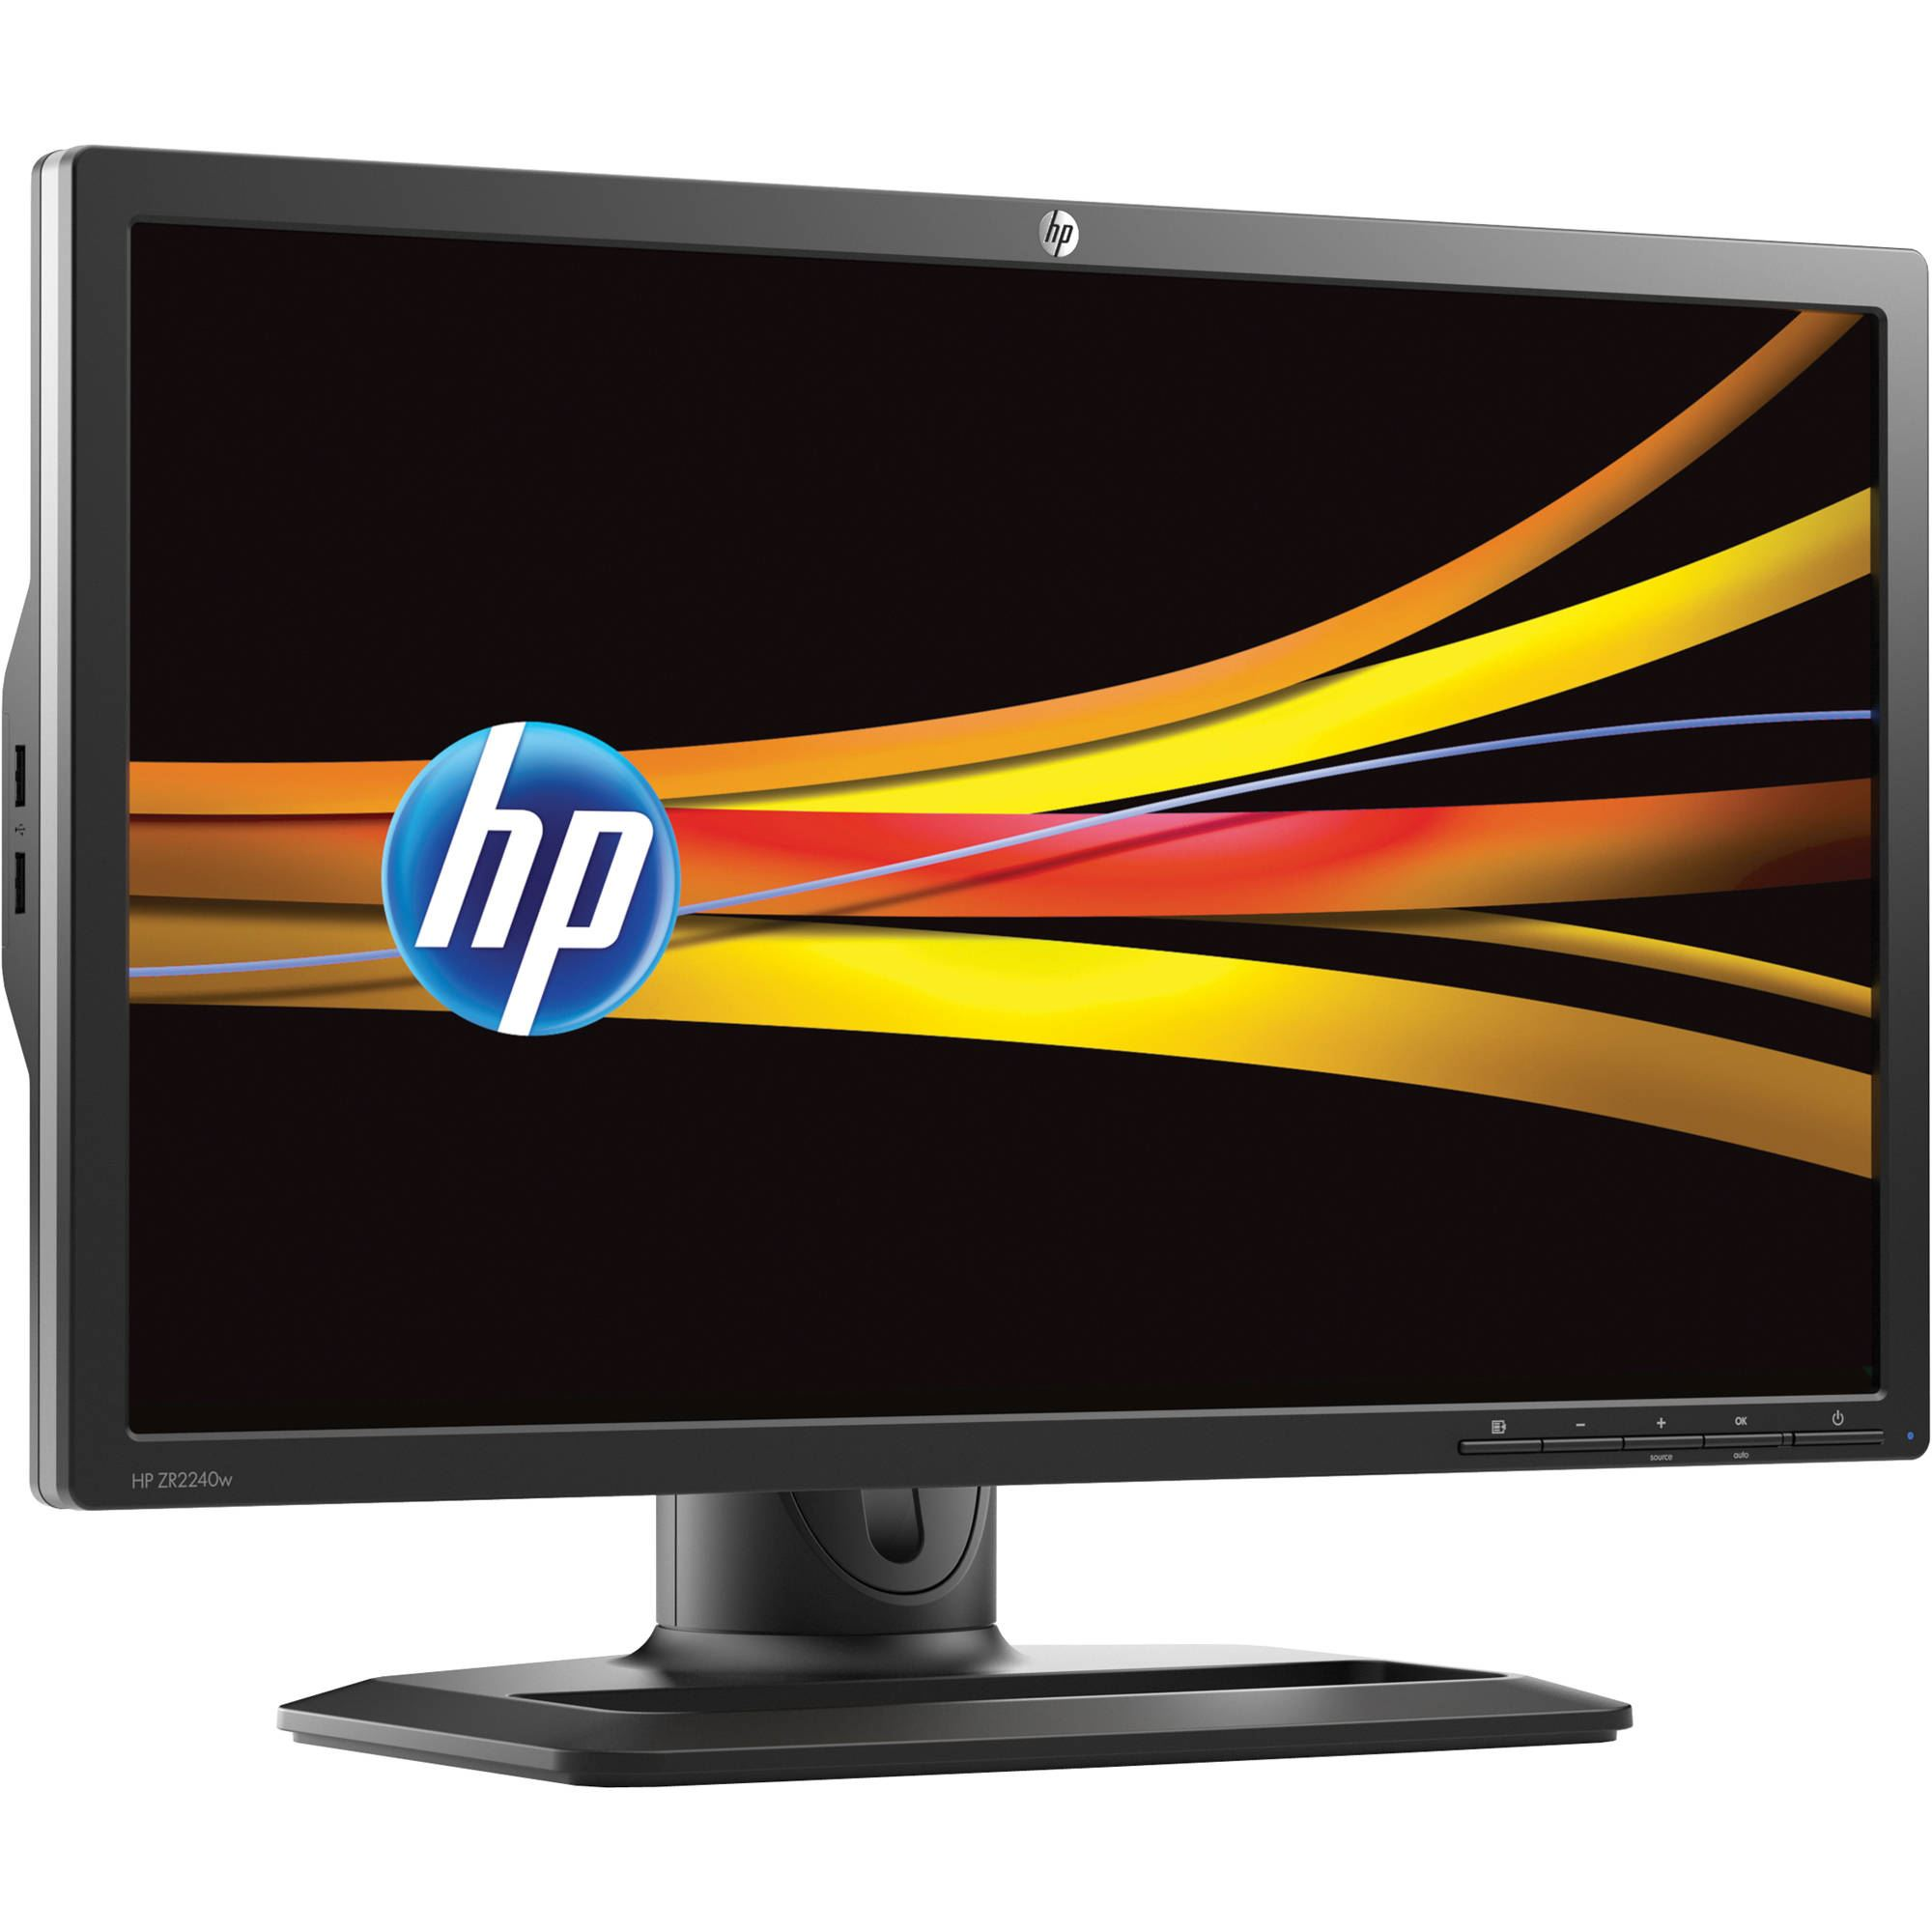 HP ZR2240w IPS – 7725